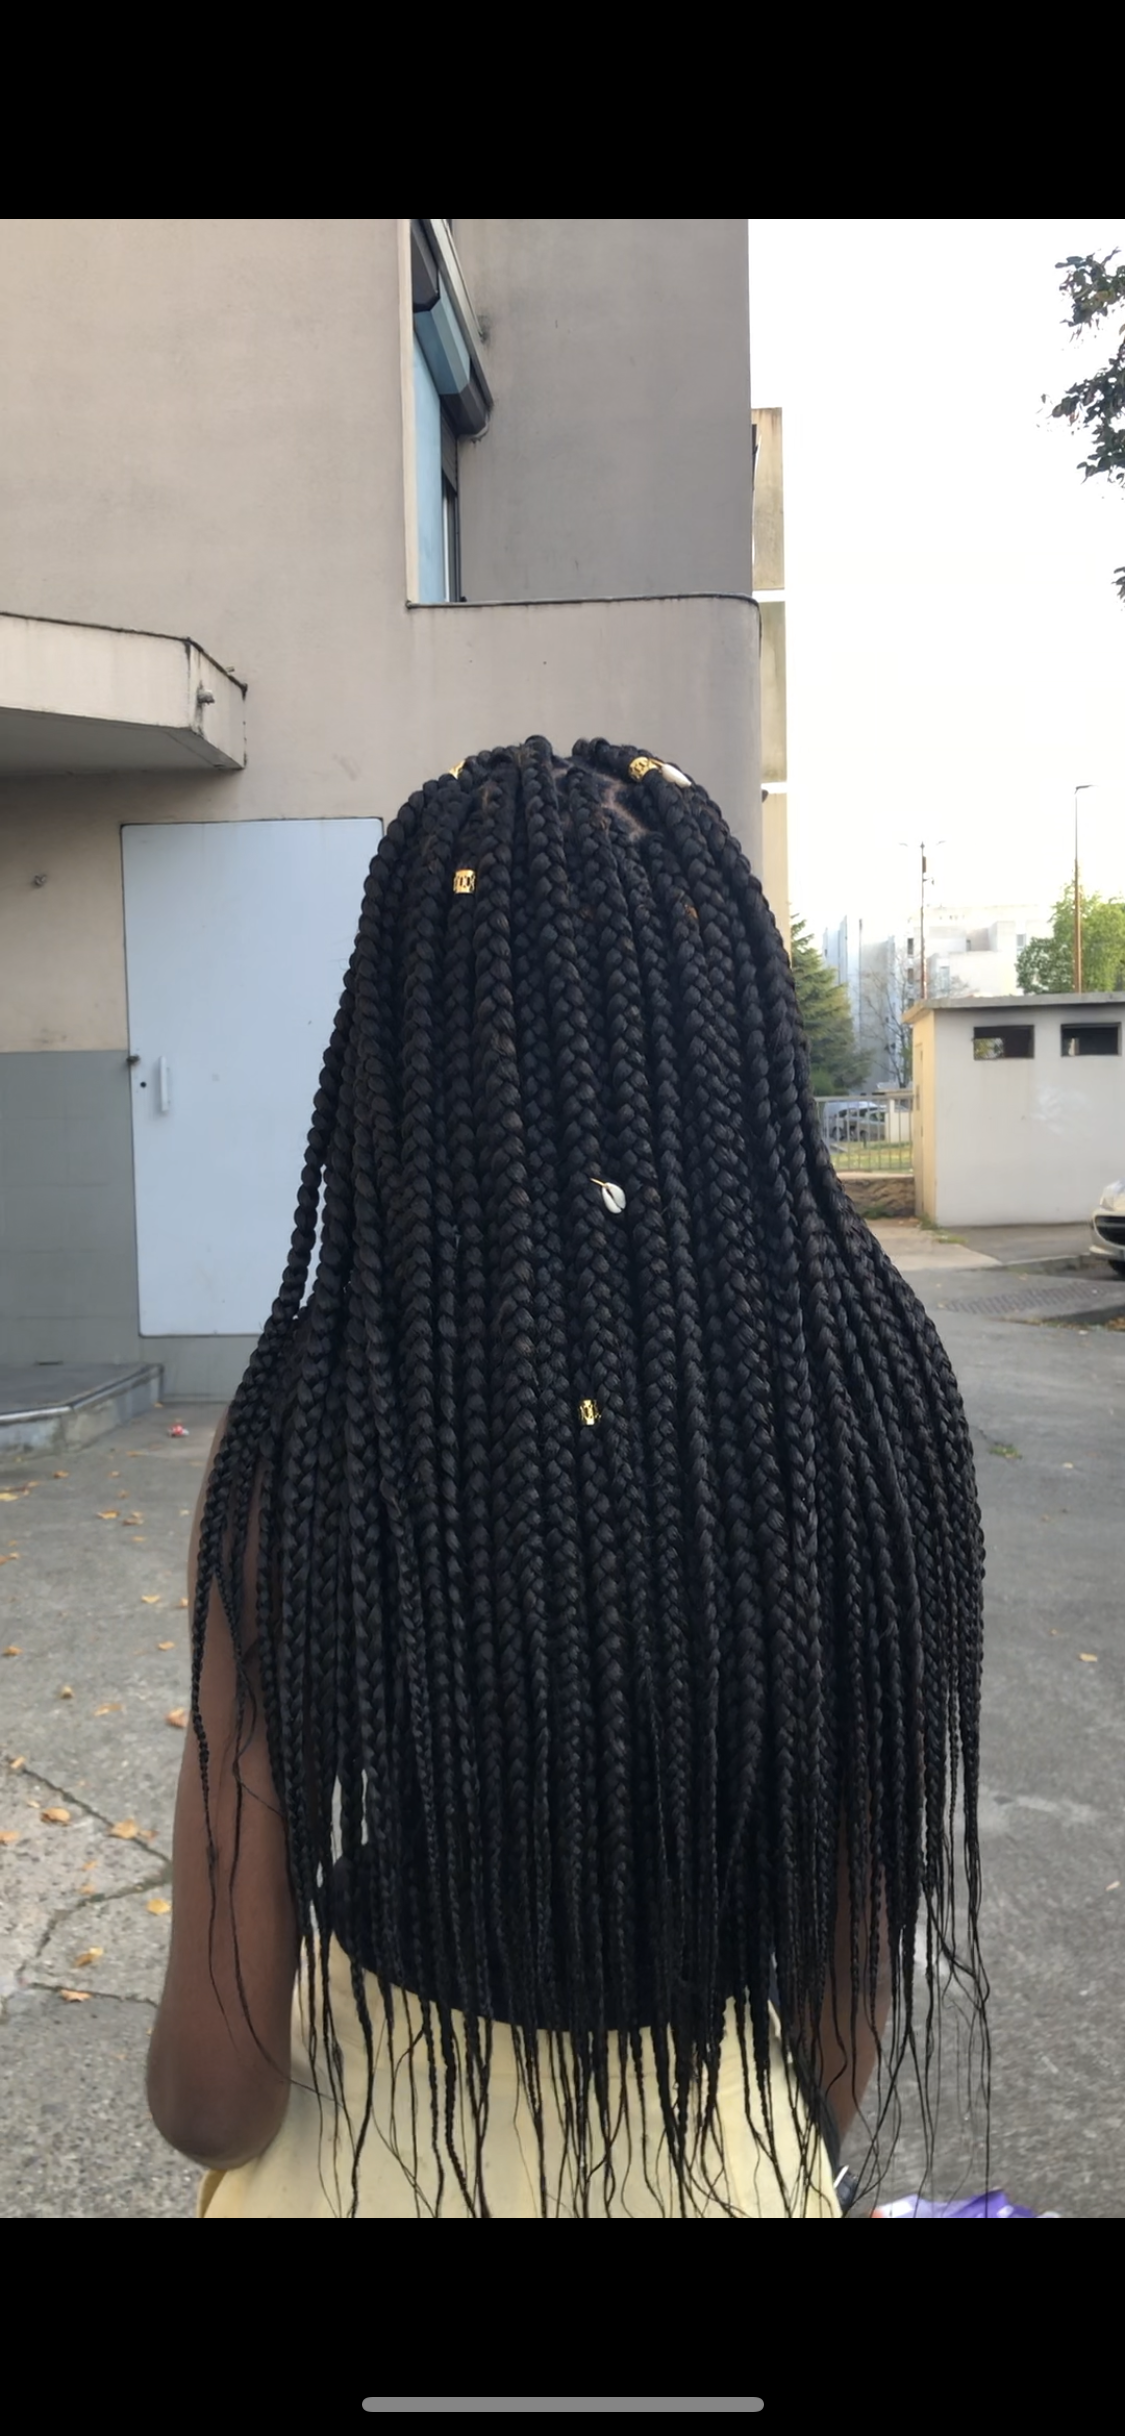 salon de coiffure afro tresse tresses box braids crochet braids vanilles tissages paris 75 77 78 91 92 93 94 95 SMXYJANM